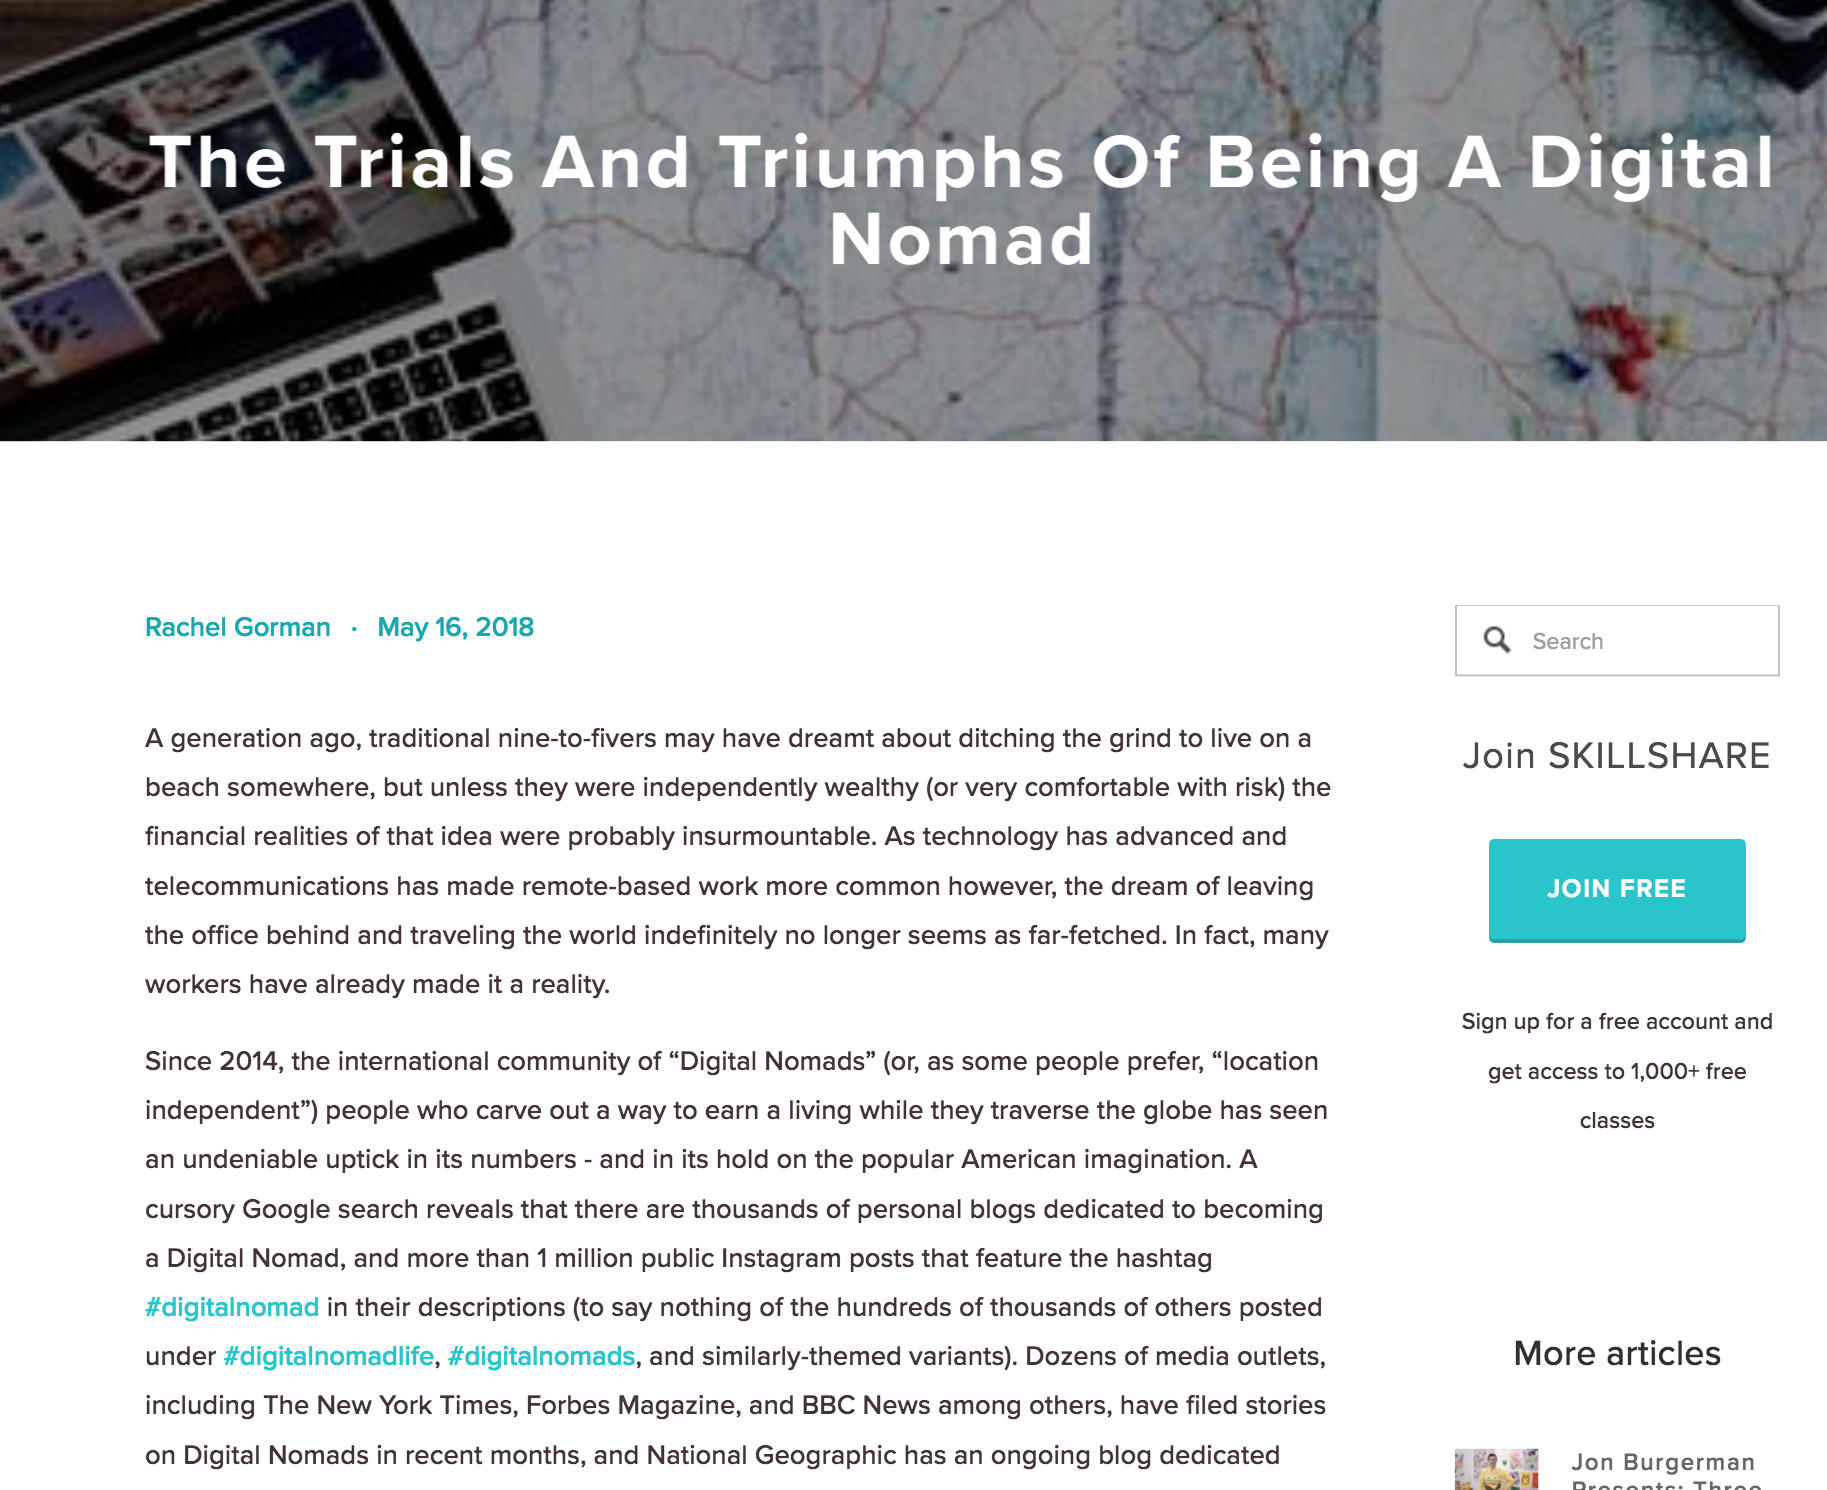 Skillshare in the media digital nomad